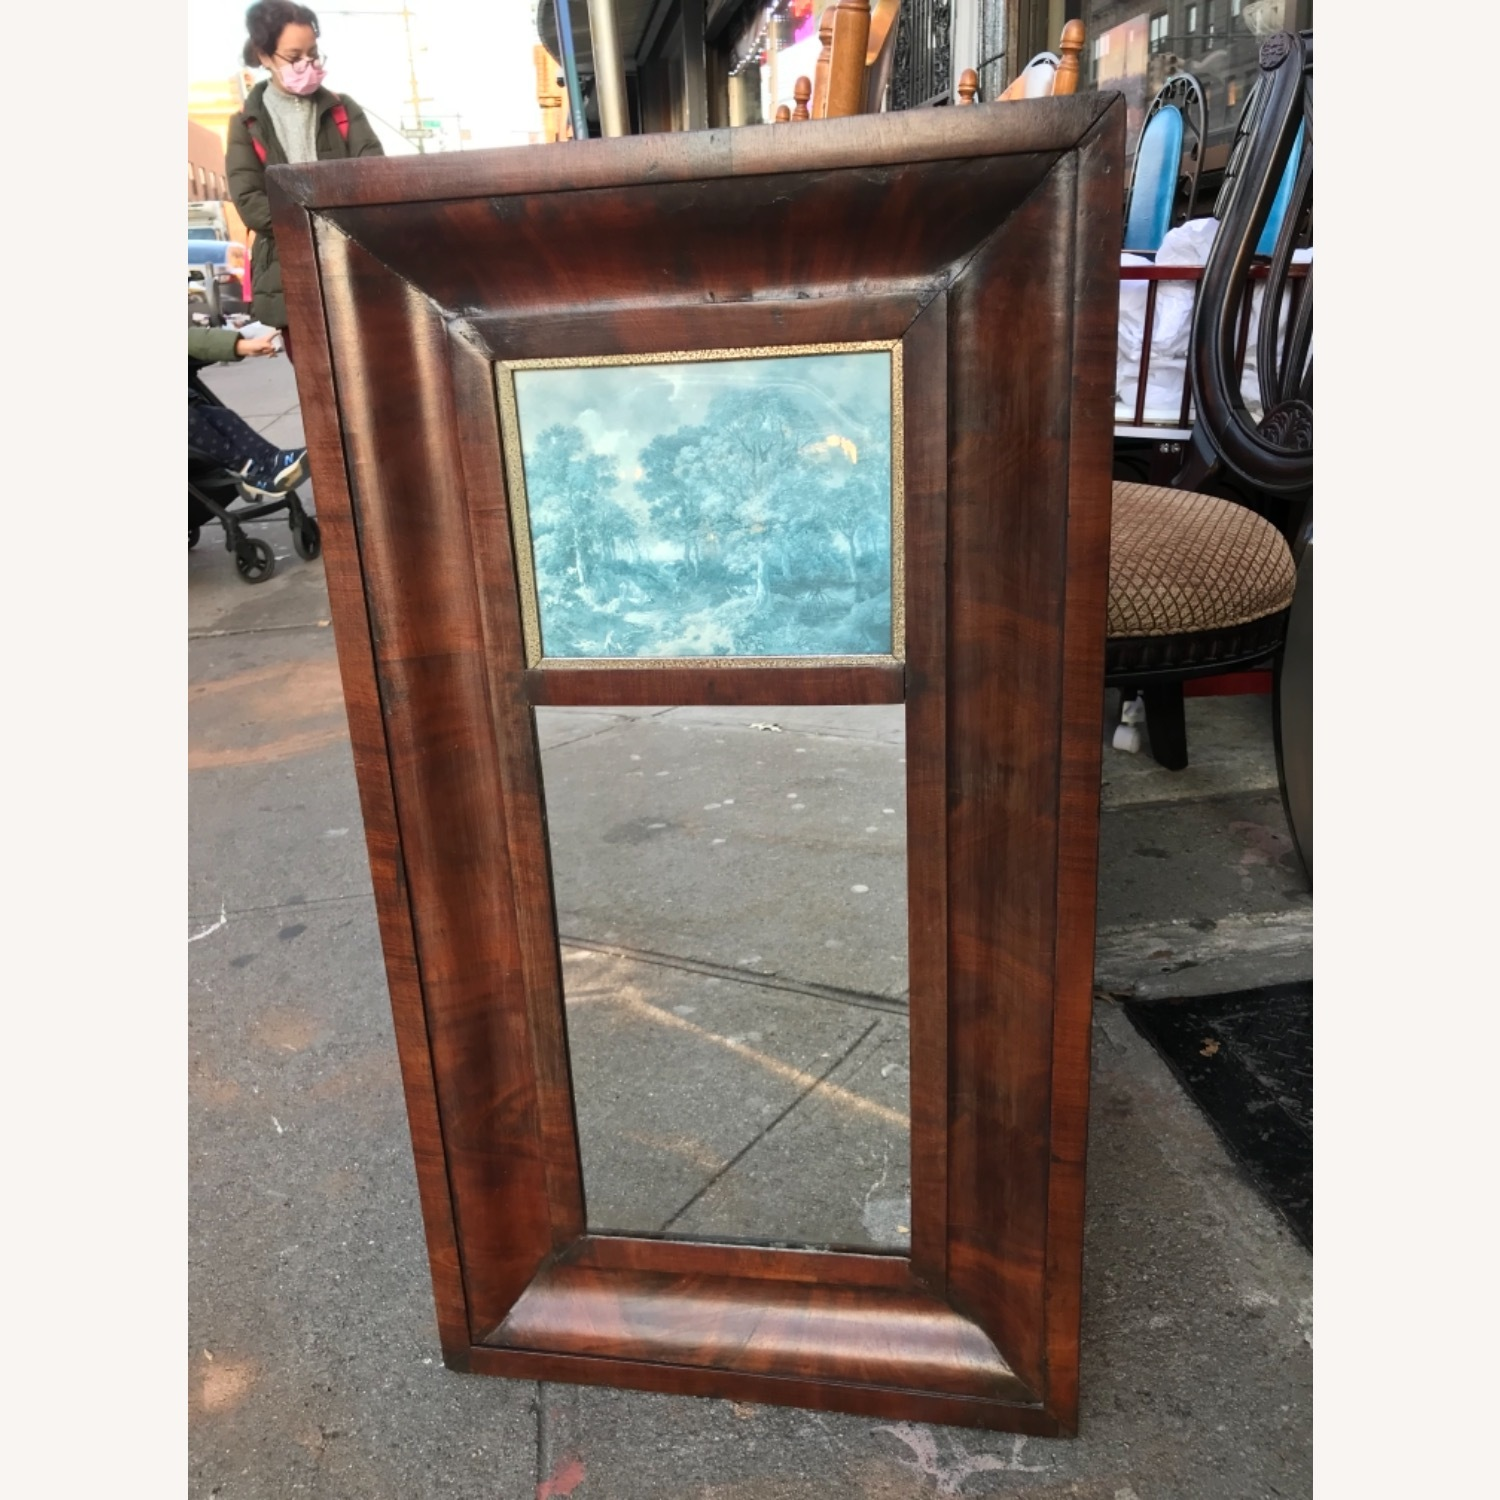 Antique 1900s Mahogany Framed Mirror w/ Picture - image-3